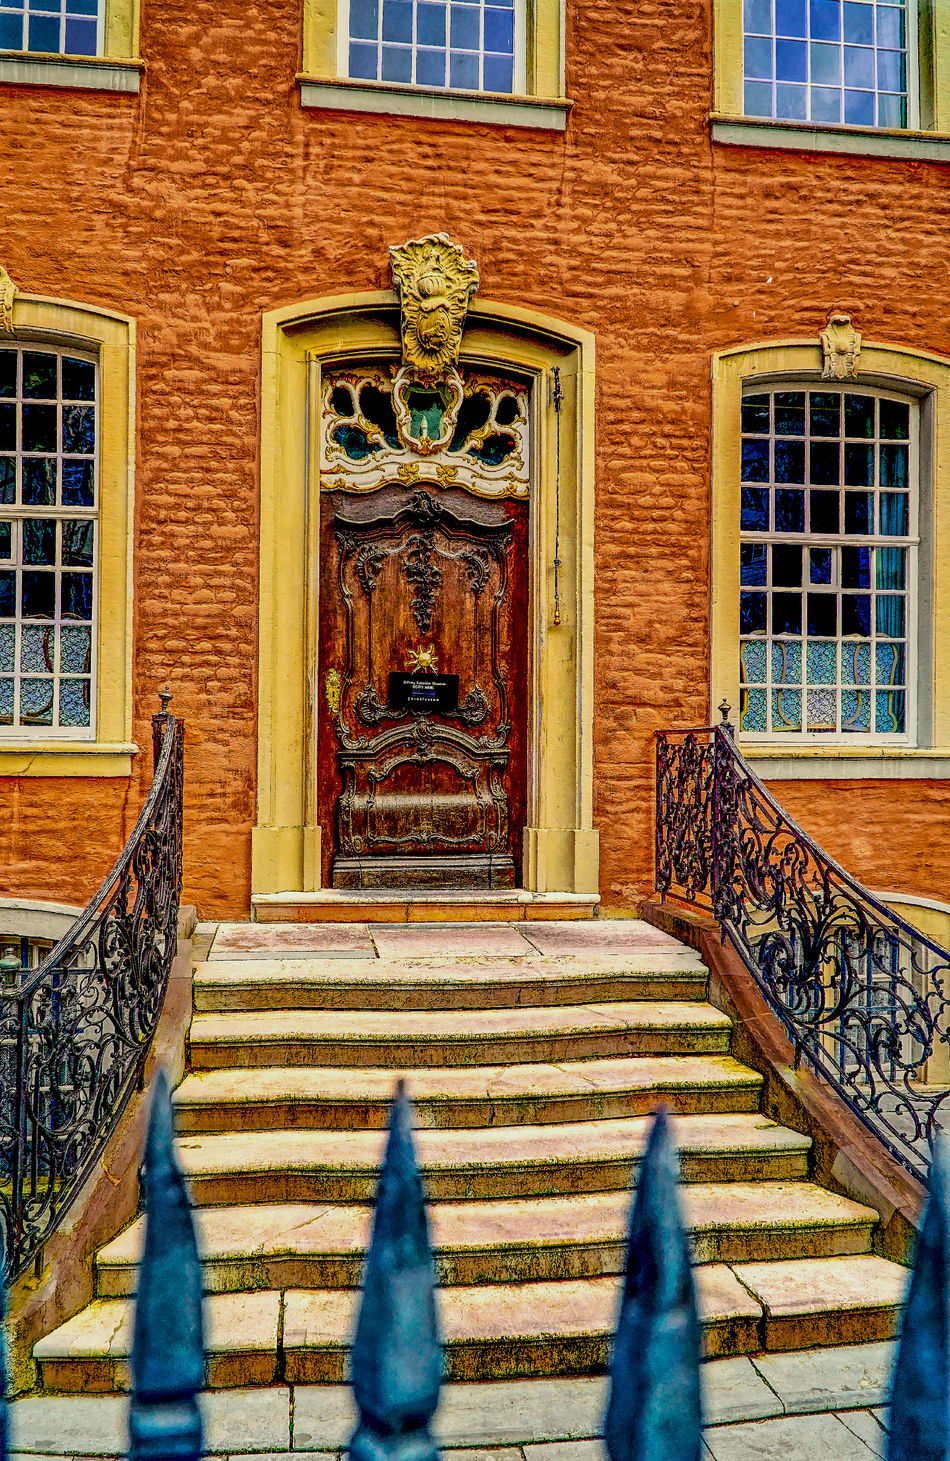 Architecture Building Exterior Built Structure City Cultures Eingang Entree Façade Hdrphotography Hi No People Outdoors Place Of Worship Red Town Hall Rotes Rathaus Spirituality Street